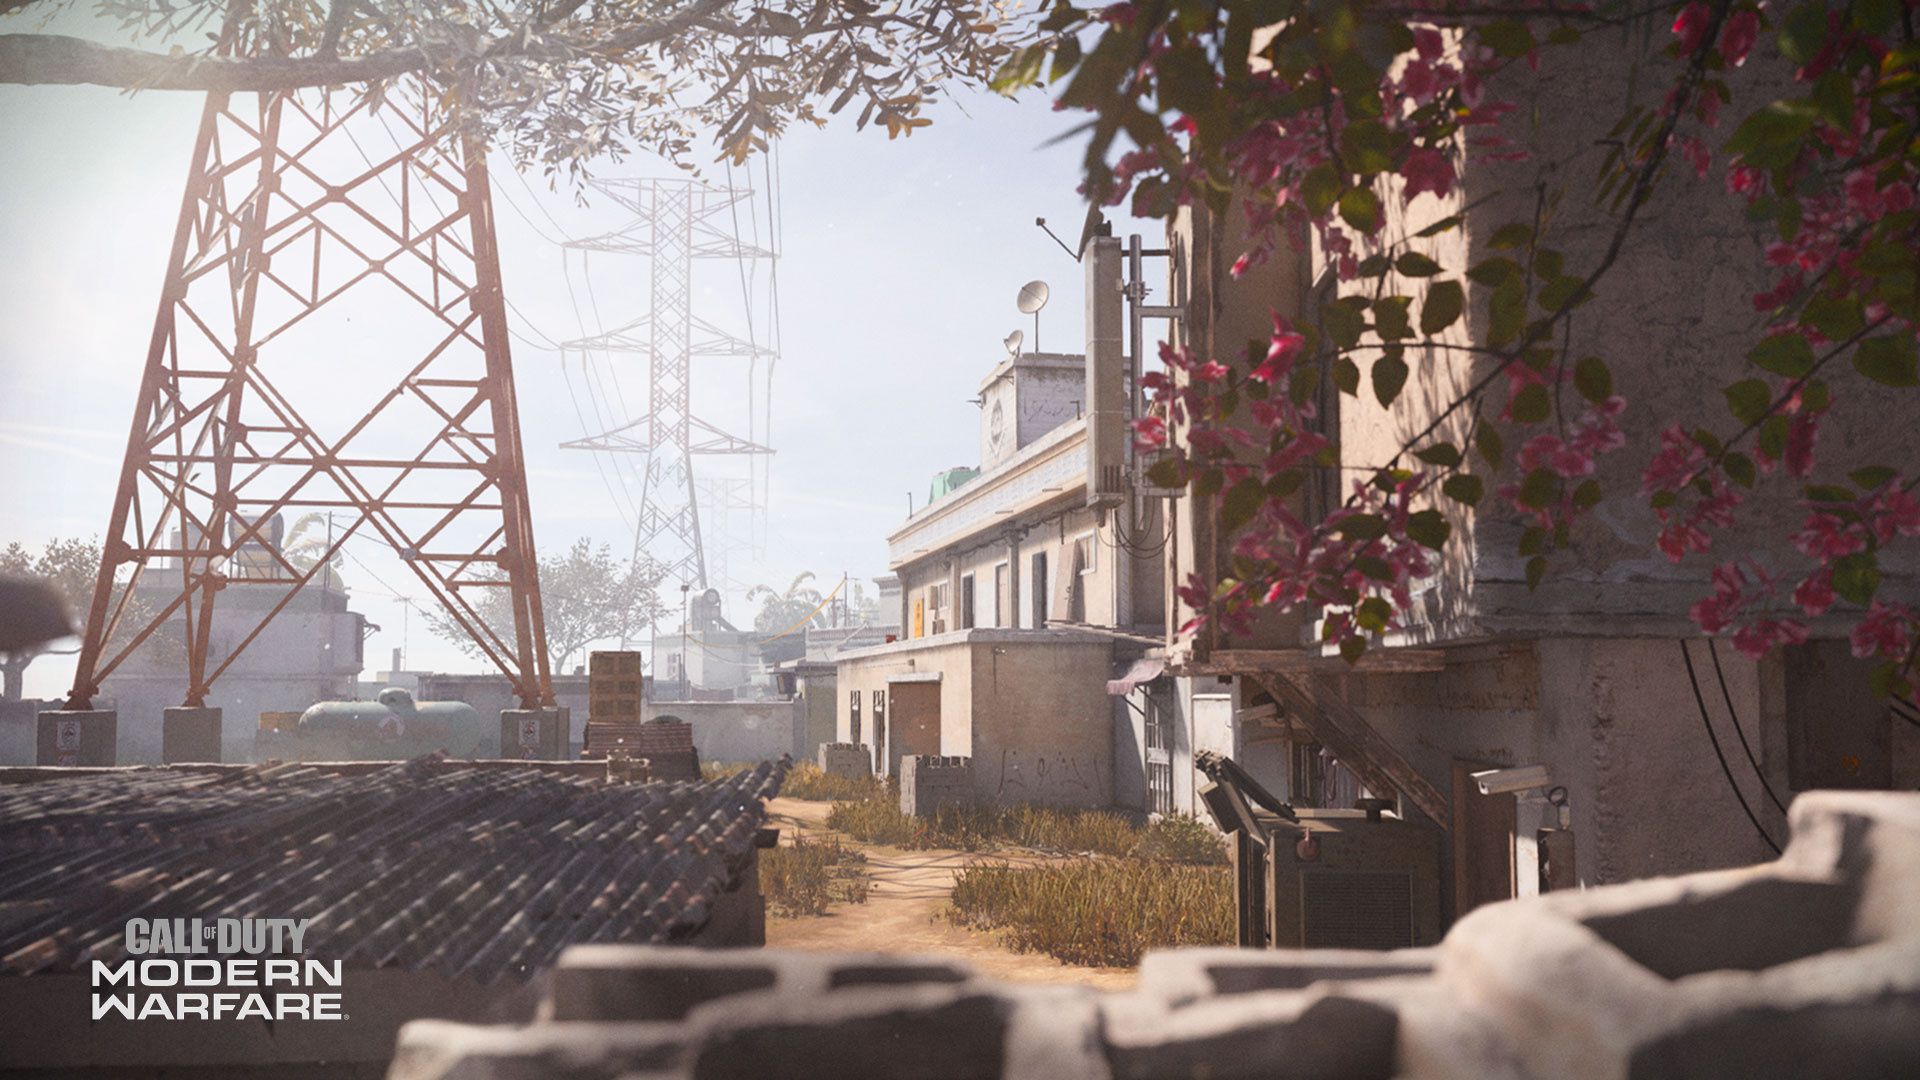 Call of Duty: Modern Warfare is getting a new map and Operator this week